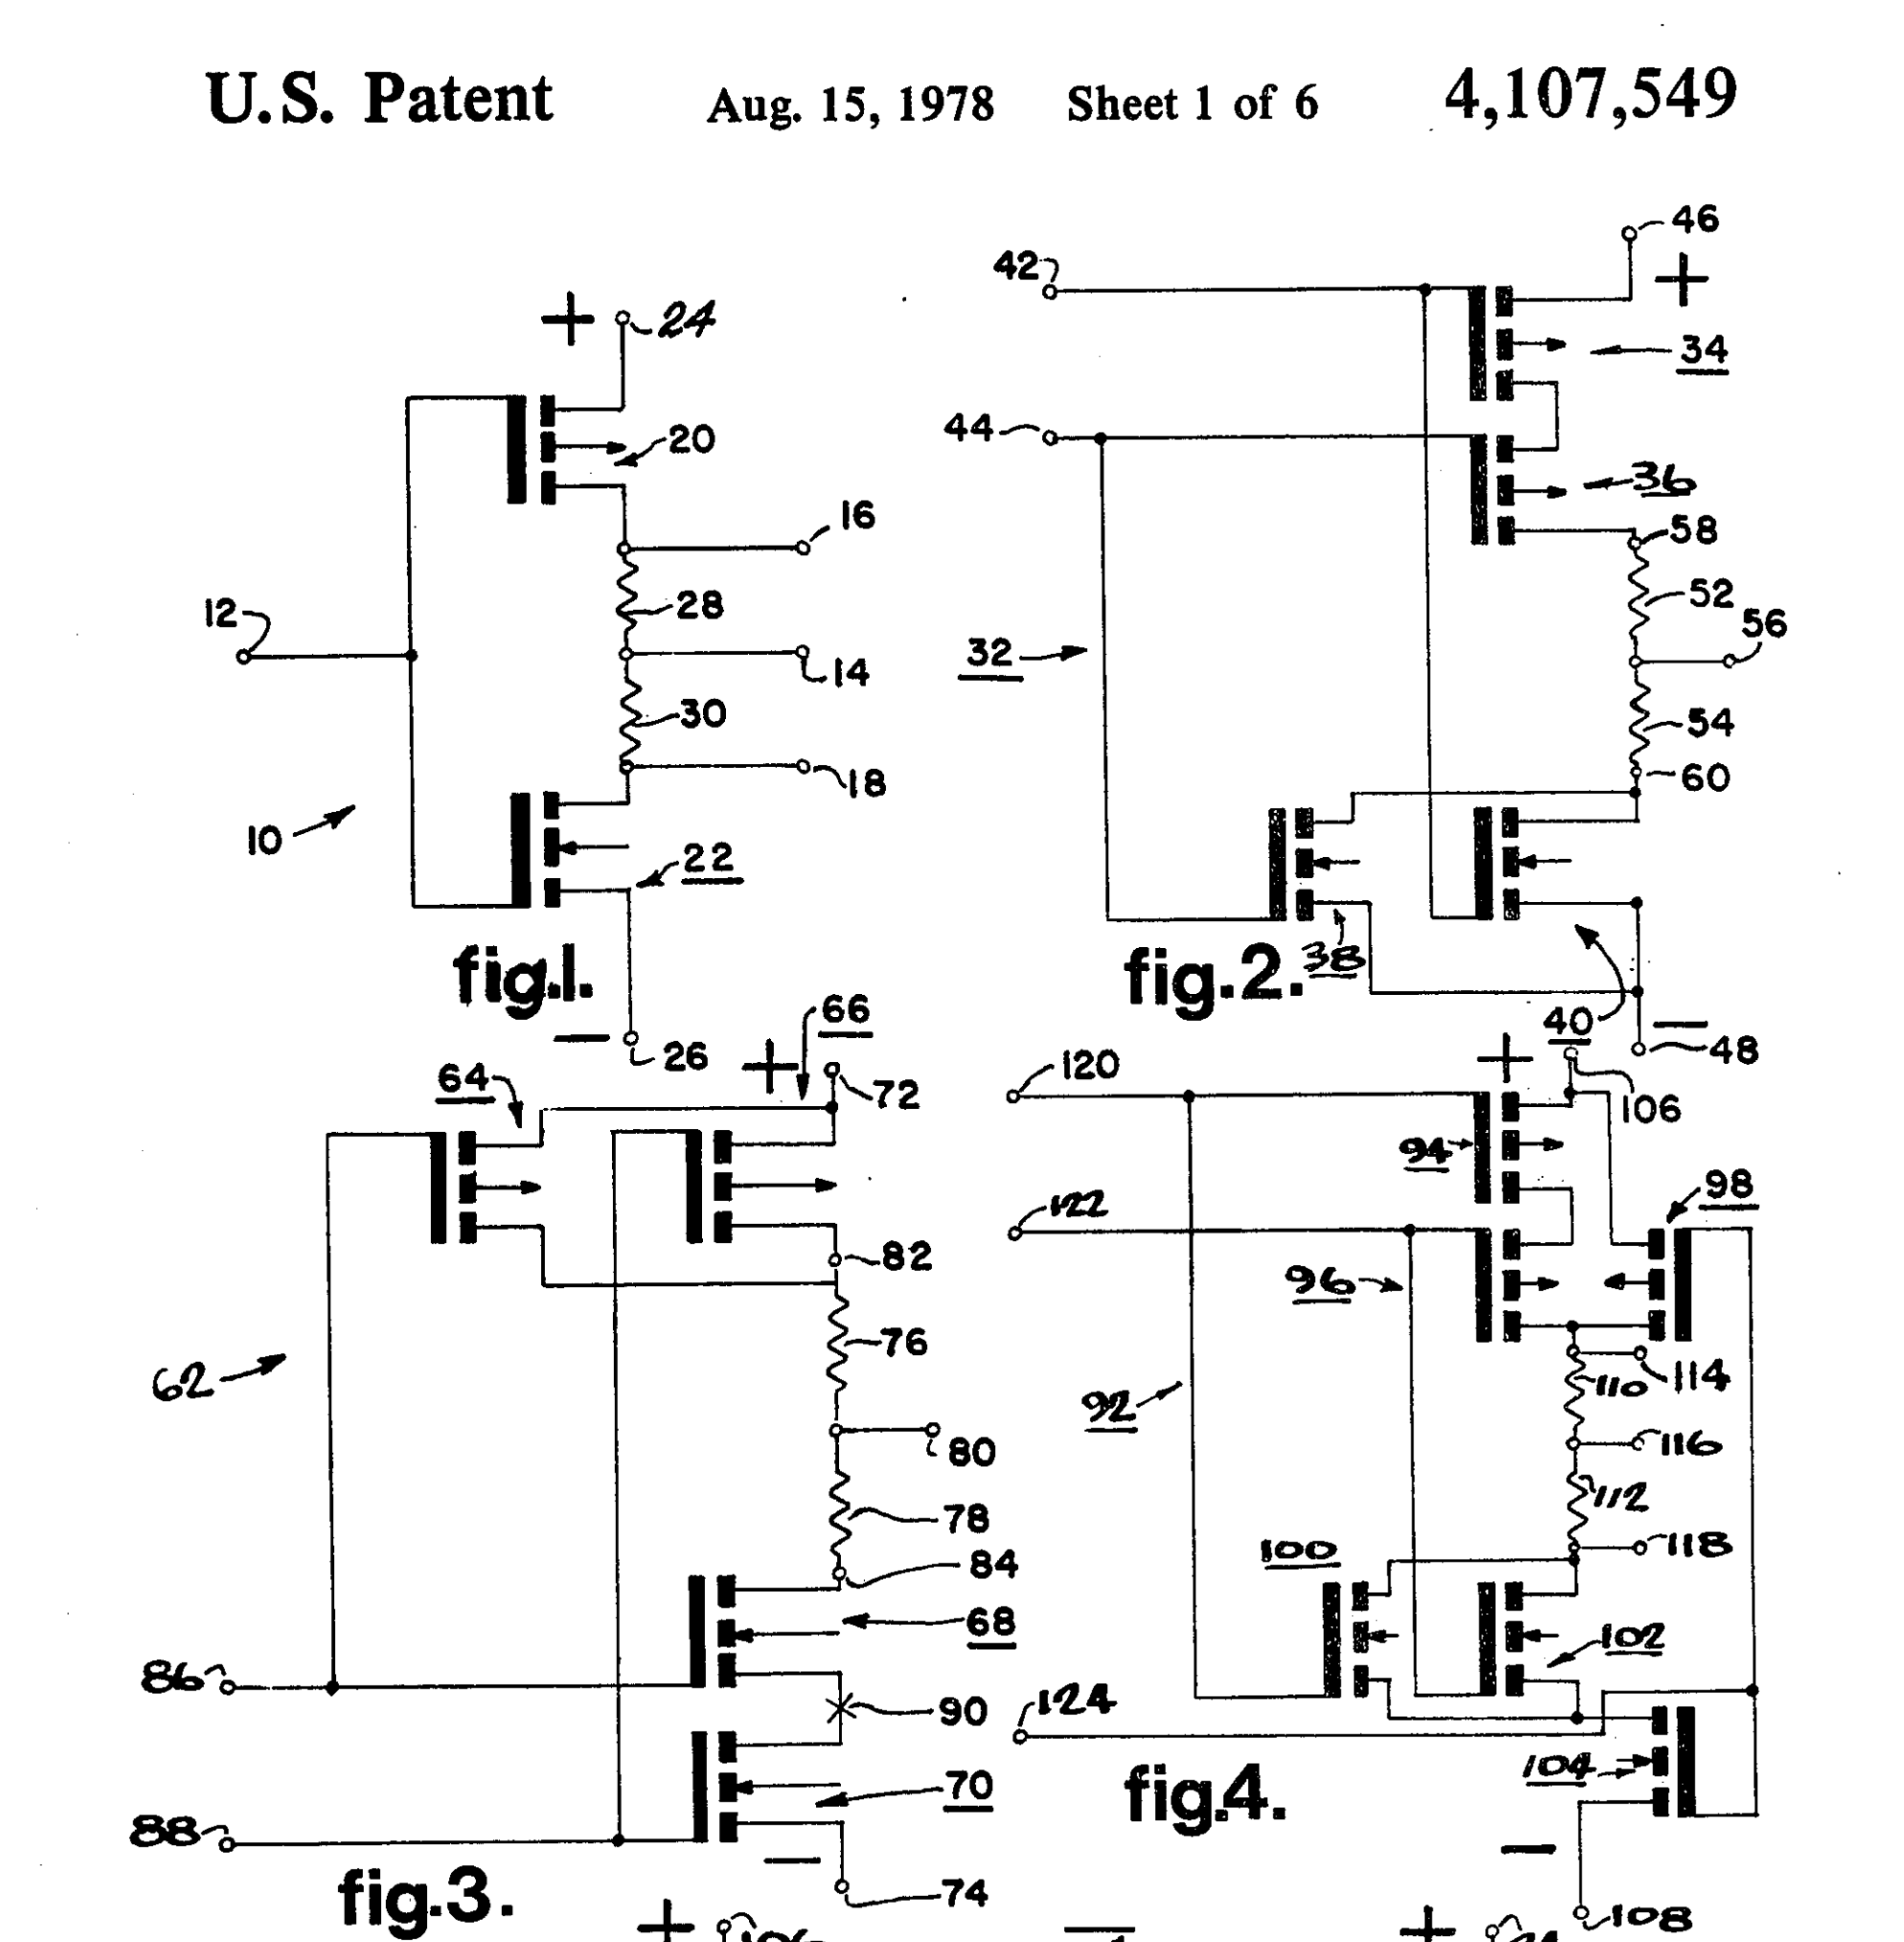 hight resolution of figure 3 is the tnand gate we want with two p channel mosfets on the top and two n channel mosfets on the bottom logic inputs a labeled 86 and b